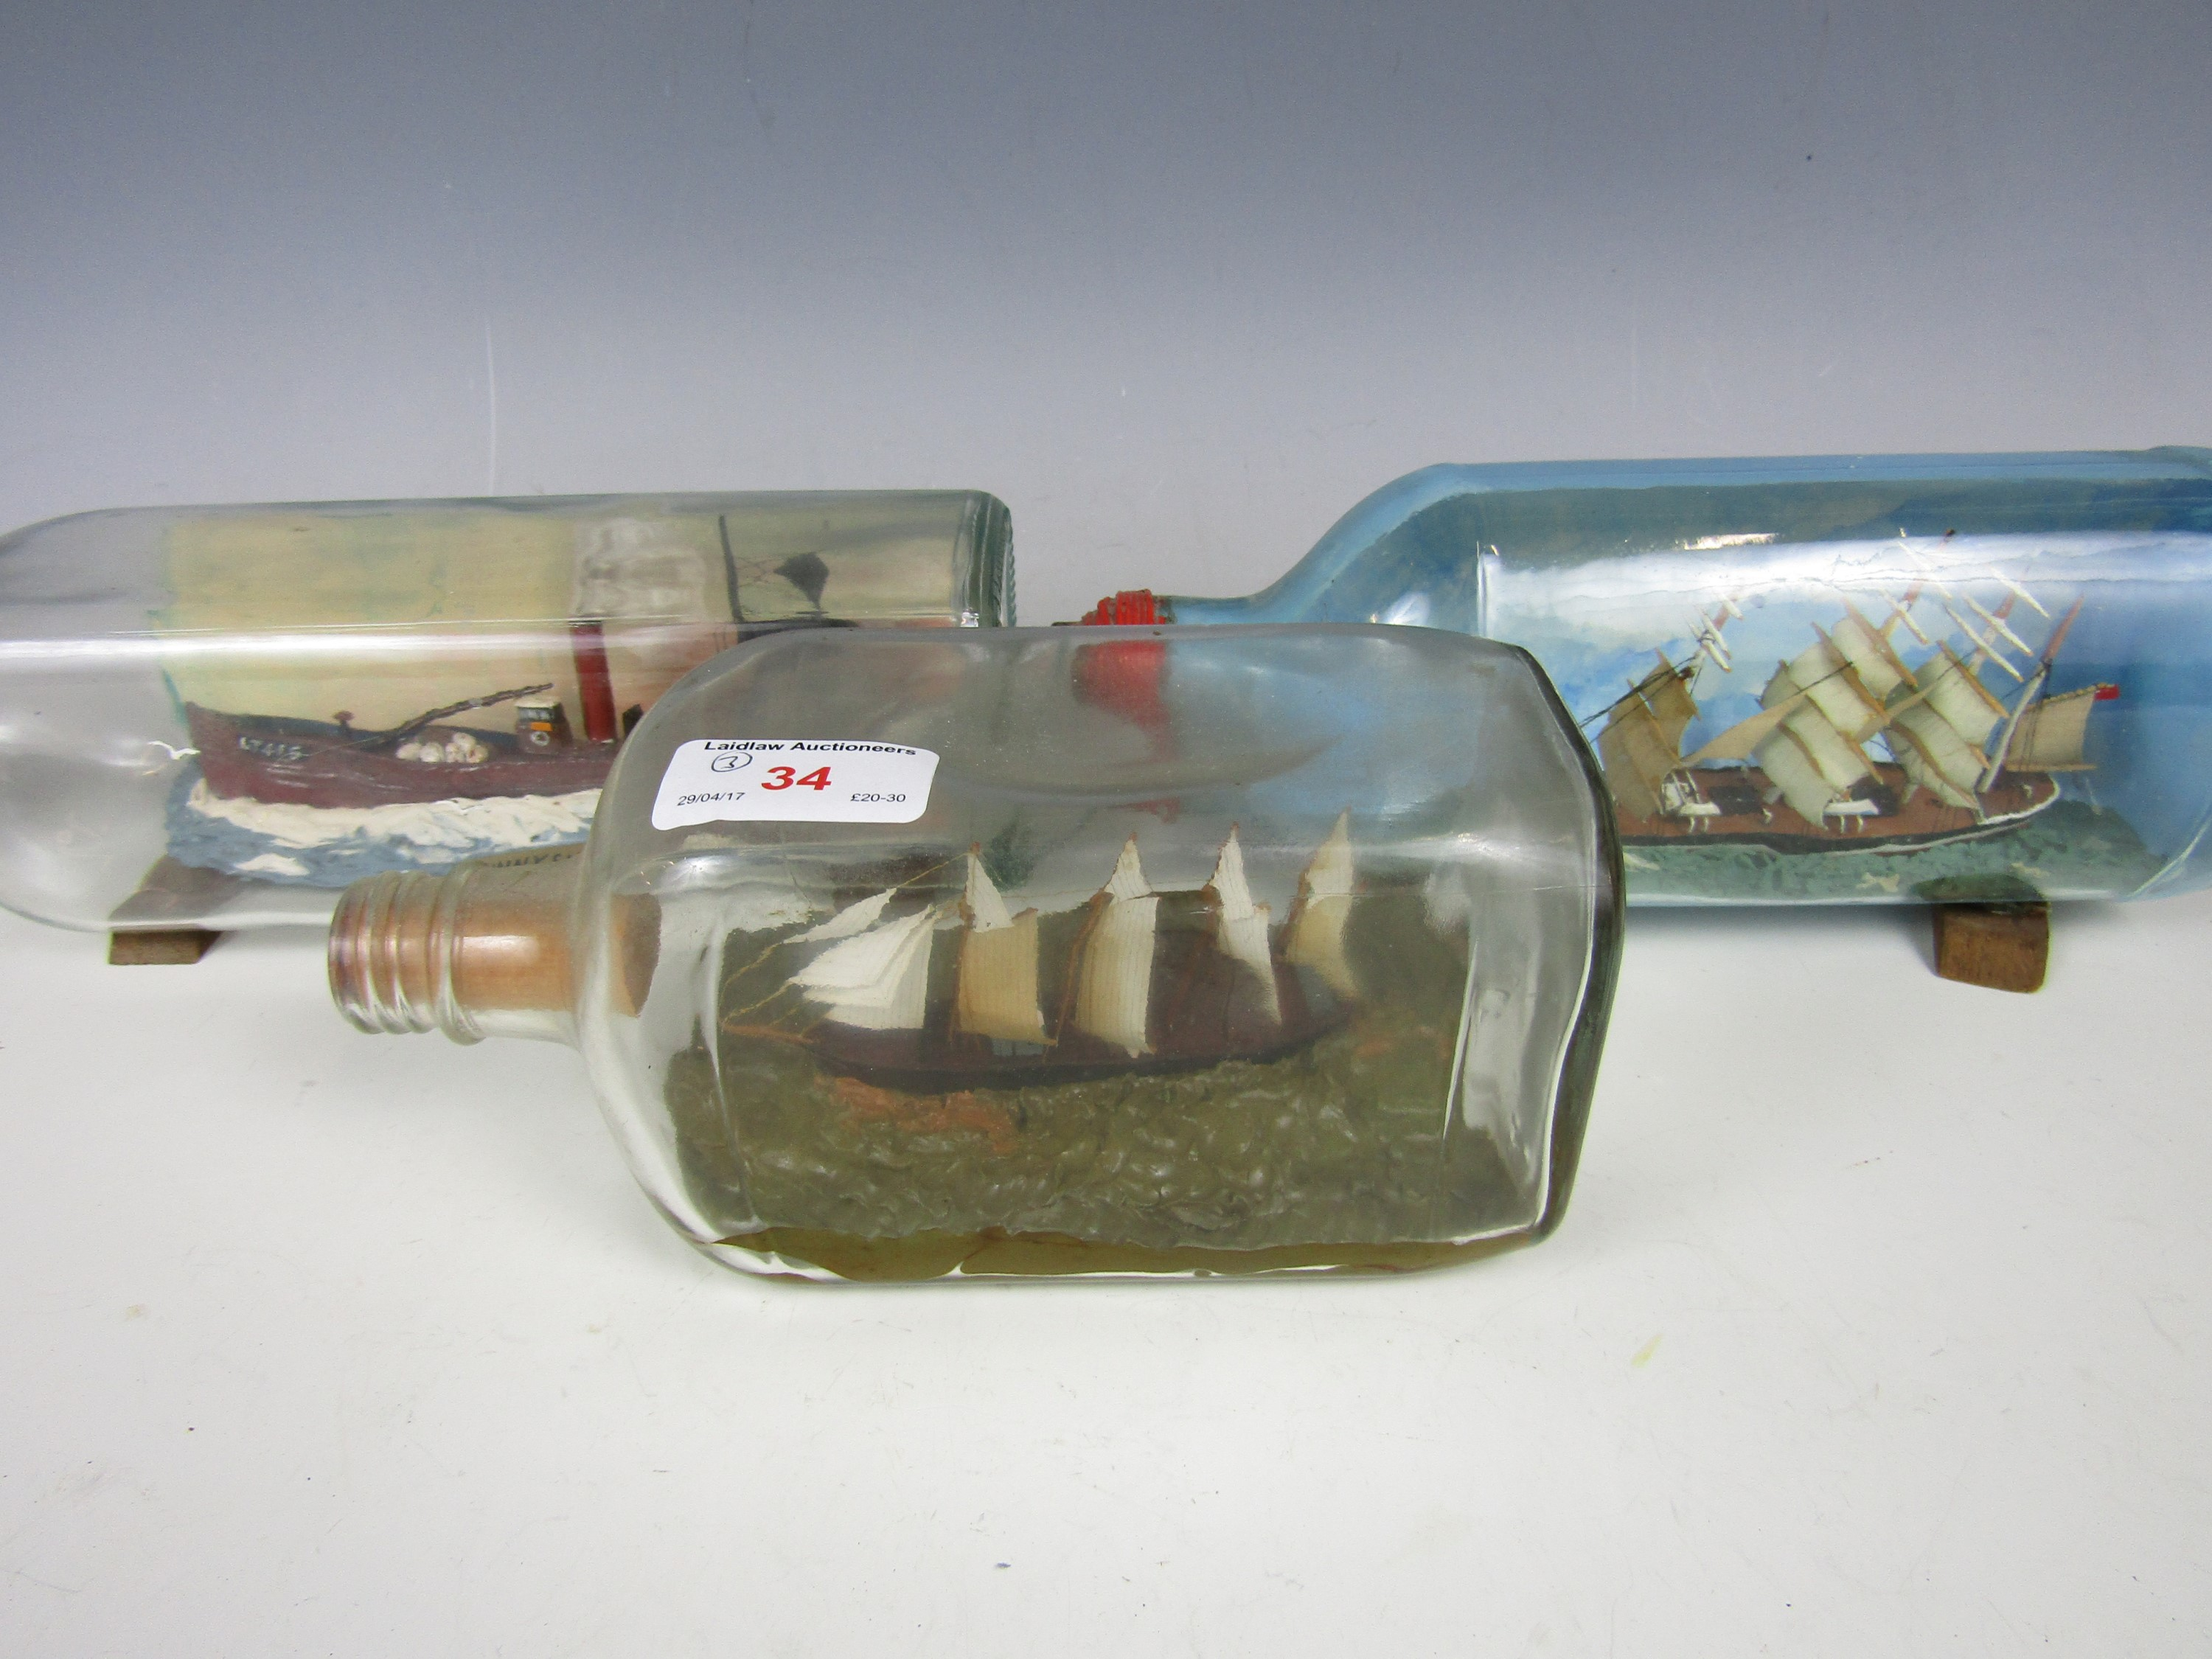 Lot 34 - Three vintage ship-in-a-bottle dioramas